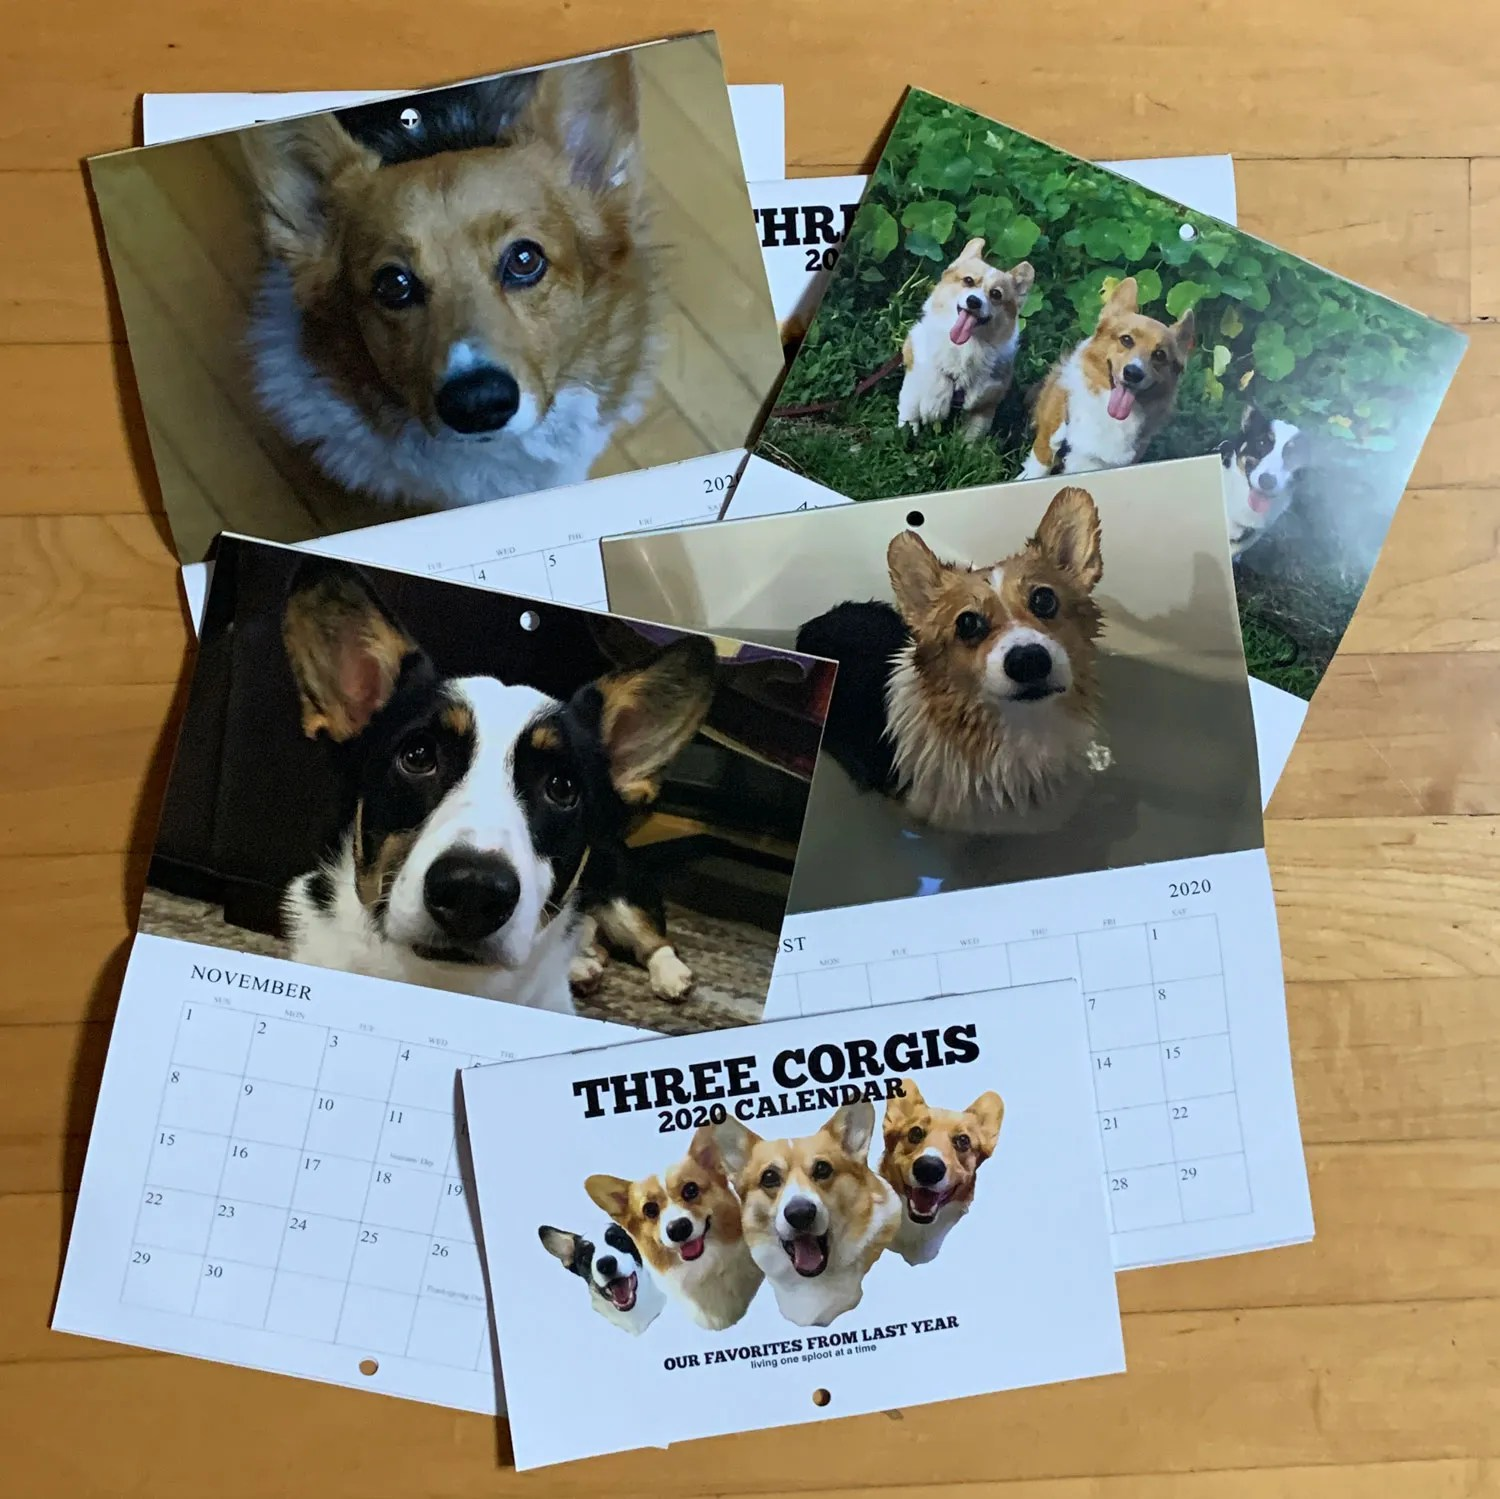 2020 Three Corgis Calendar